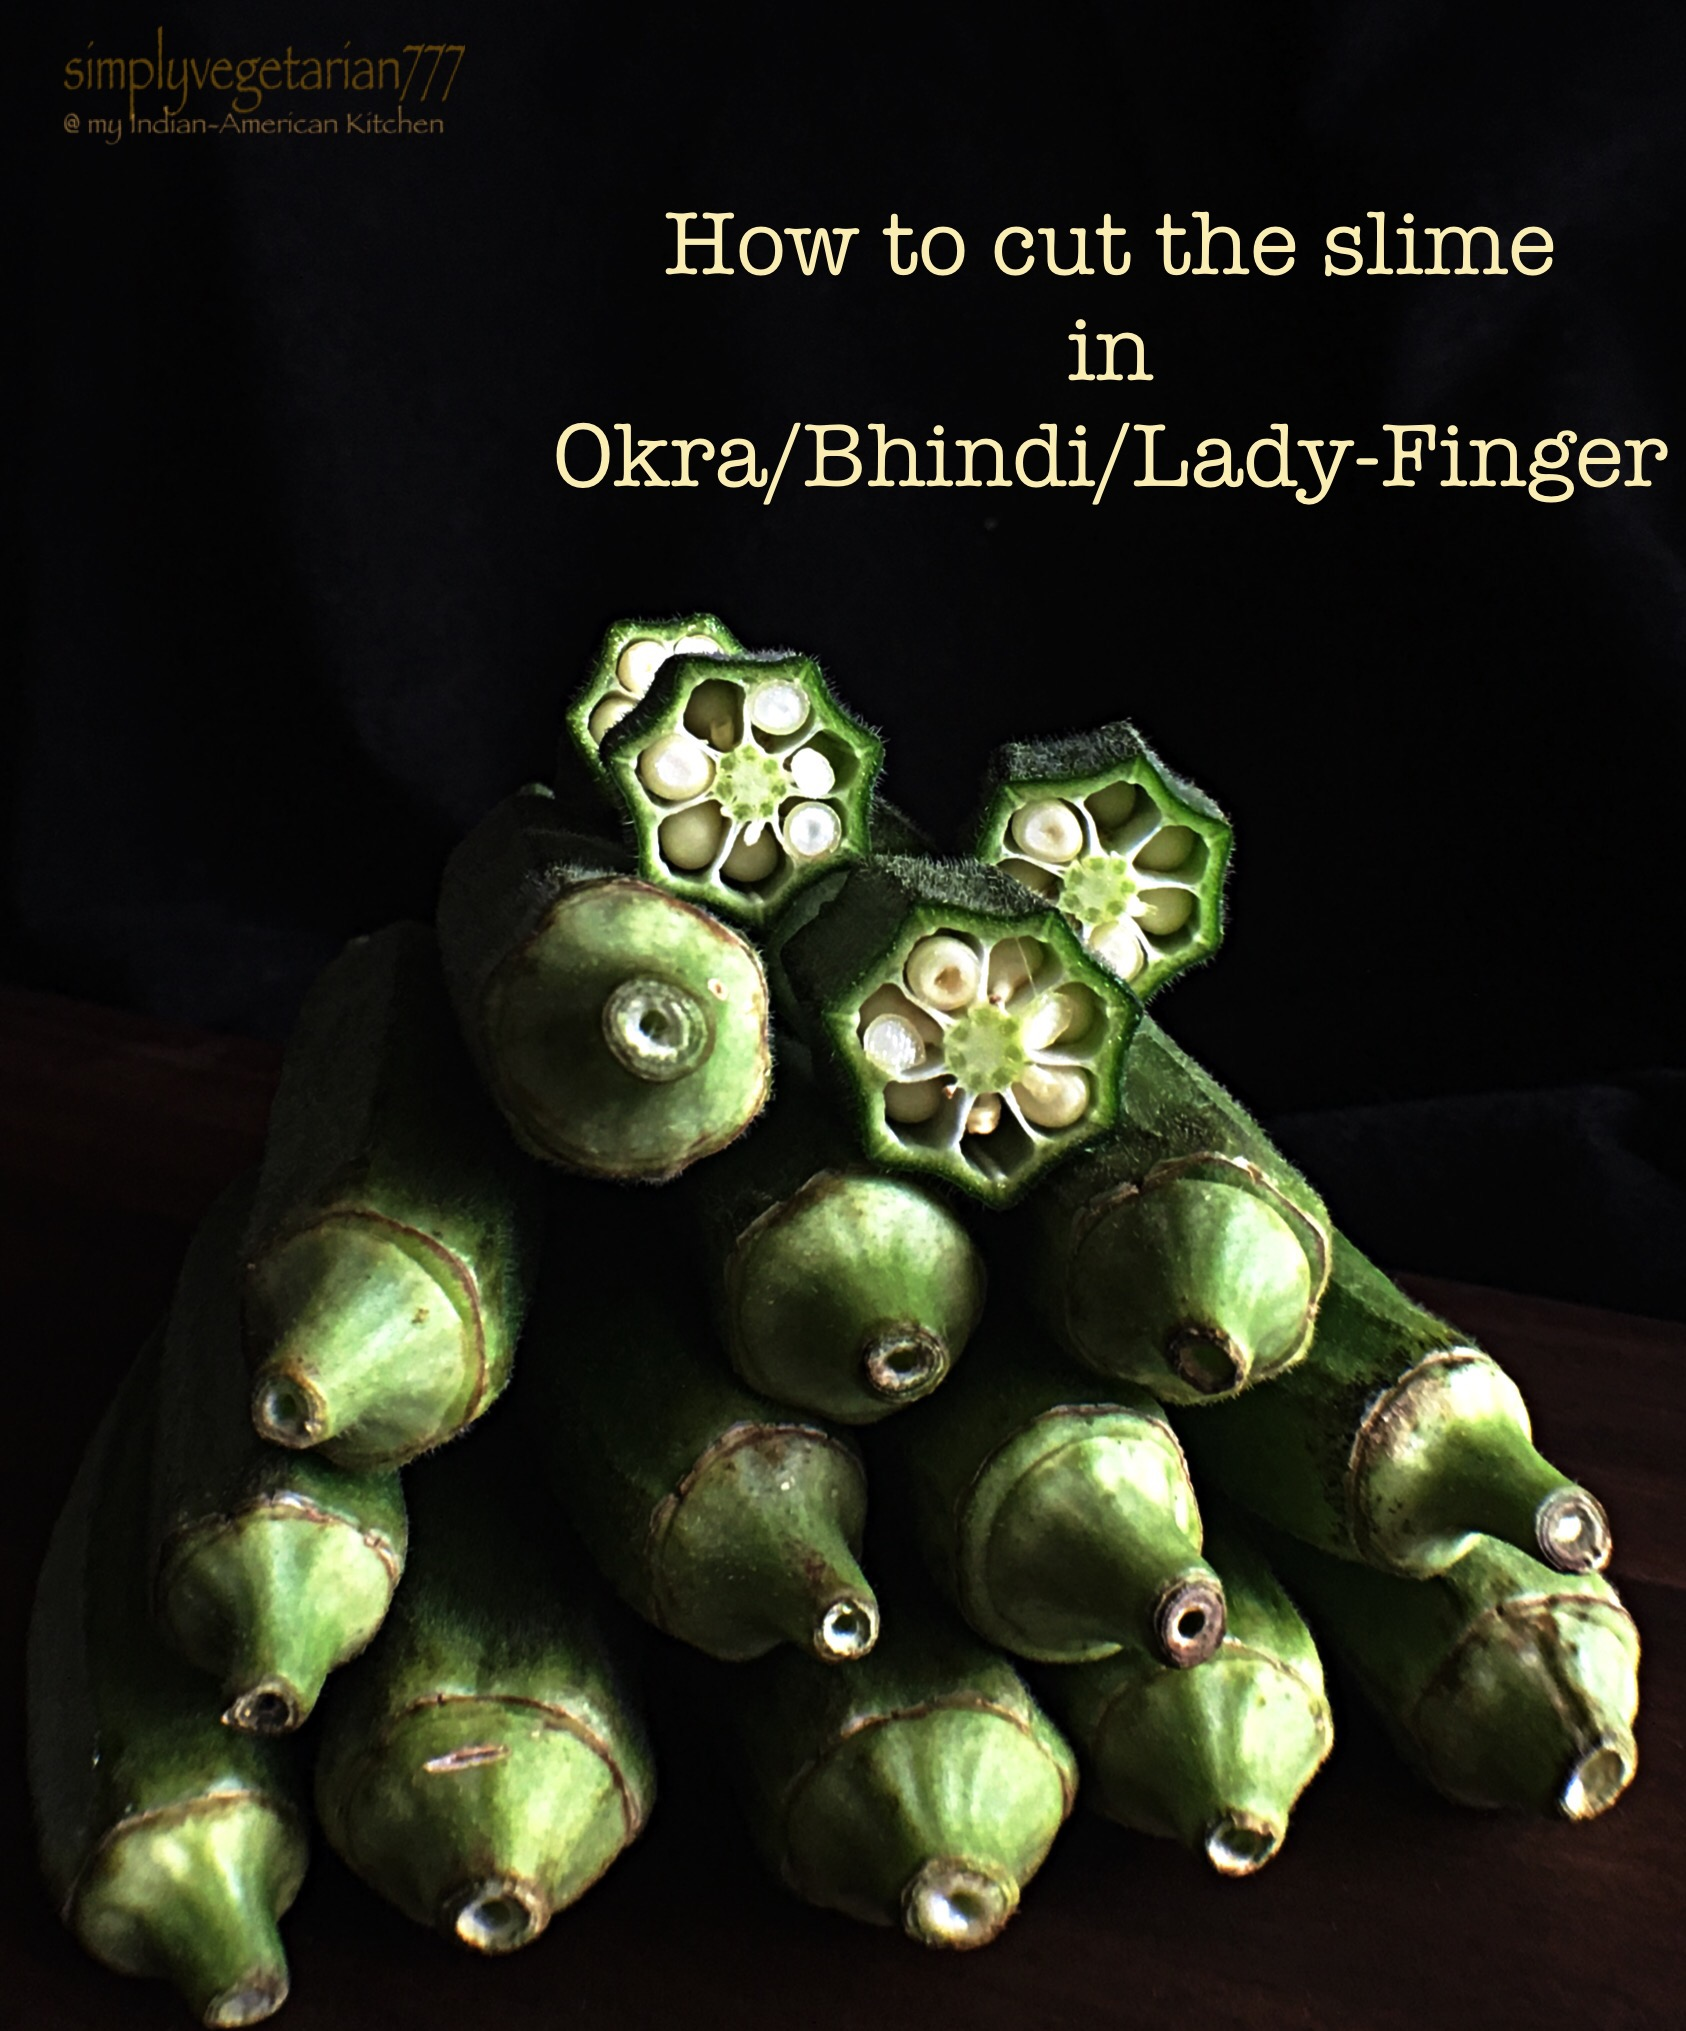 How to cut the slime in Bhindi /Okra/ Lady Finger